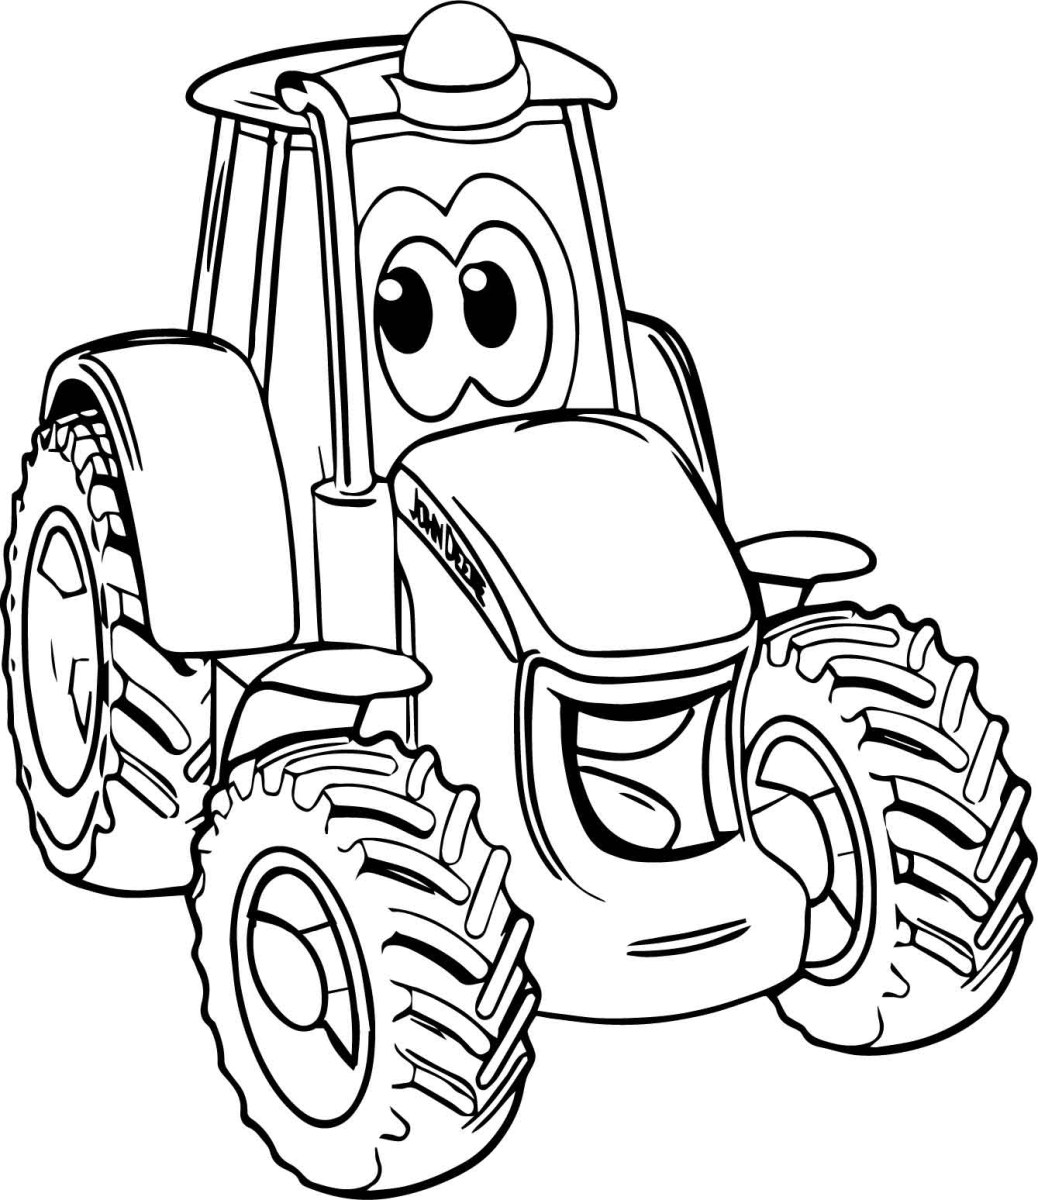 Printable John Deere Coloring Pages For Kids | 1200x1038